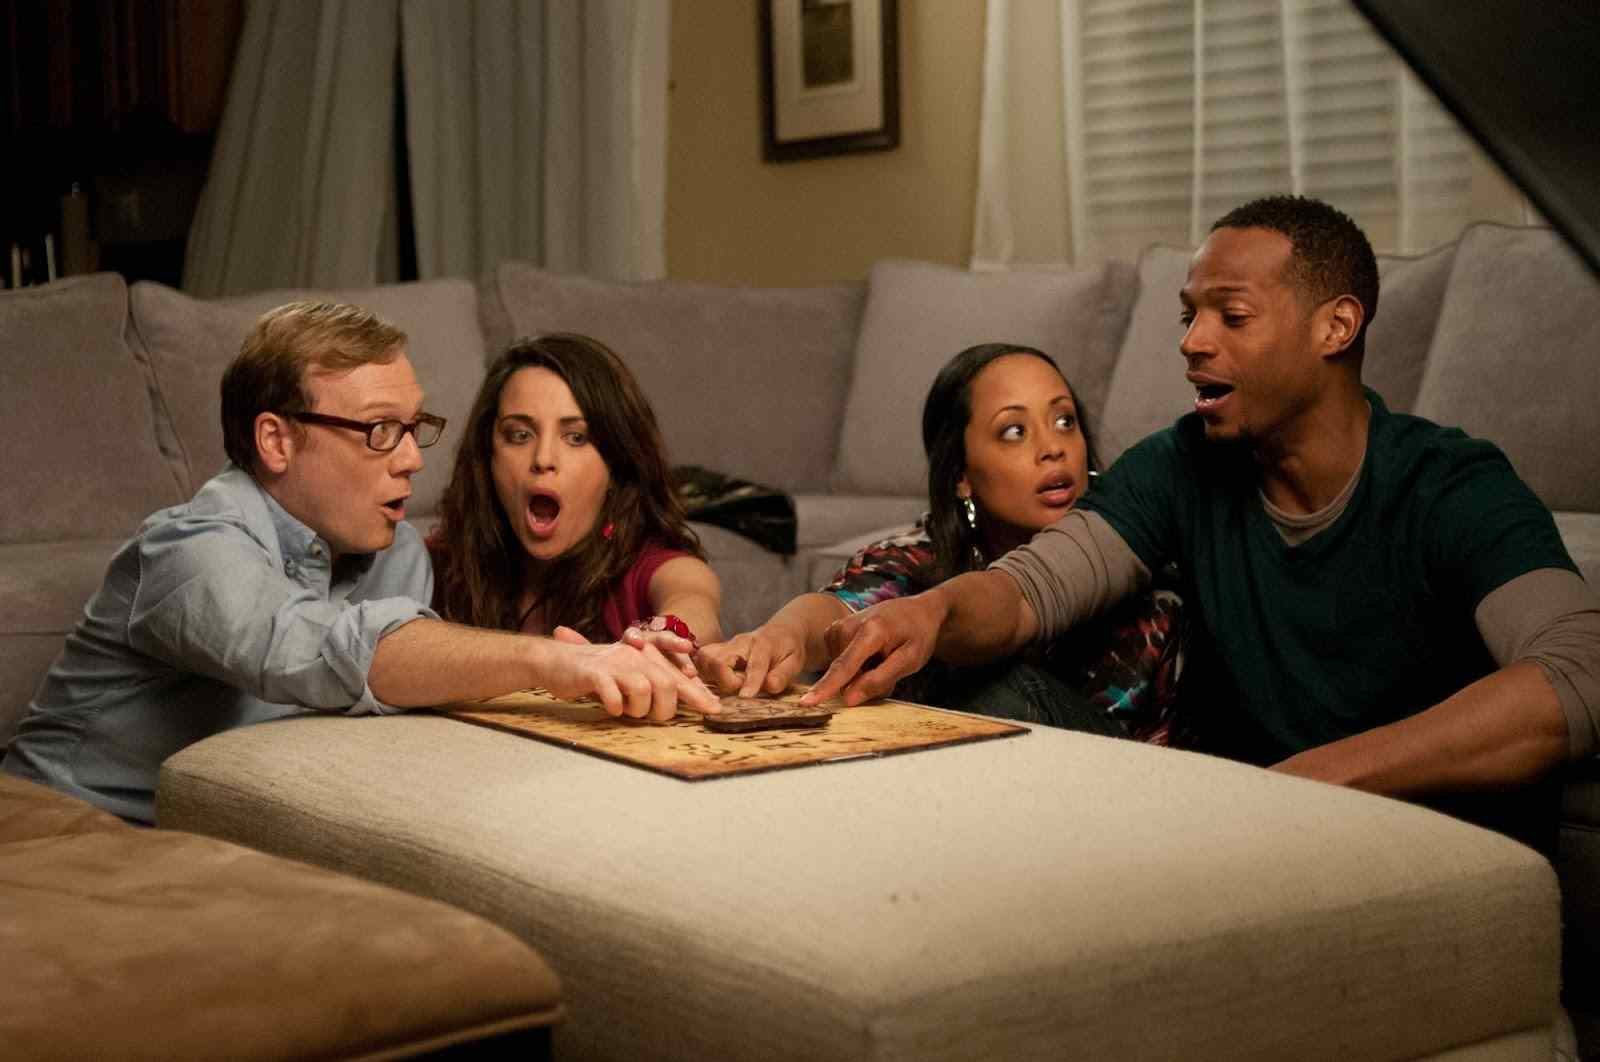 Malcolm and girlfriend Kisha and Jenny and Steve do an ouija board to try and contact the demon in a Haunted house directed by Michael Tiddes.